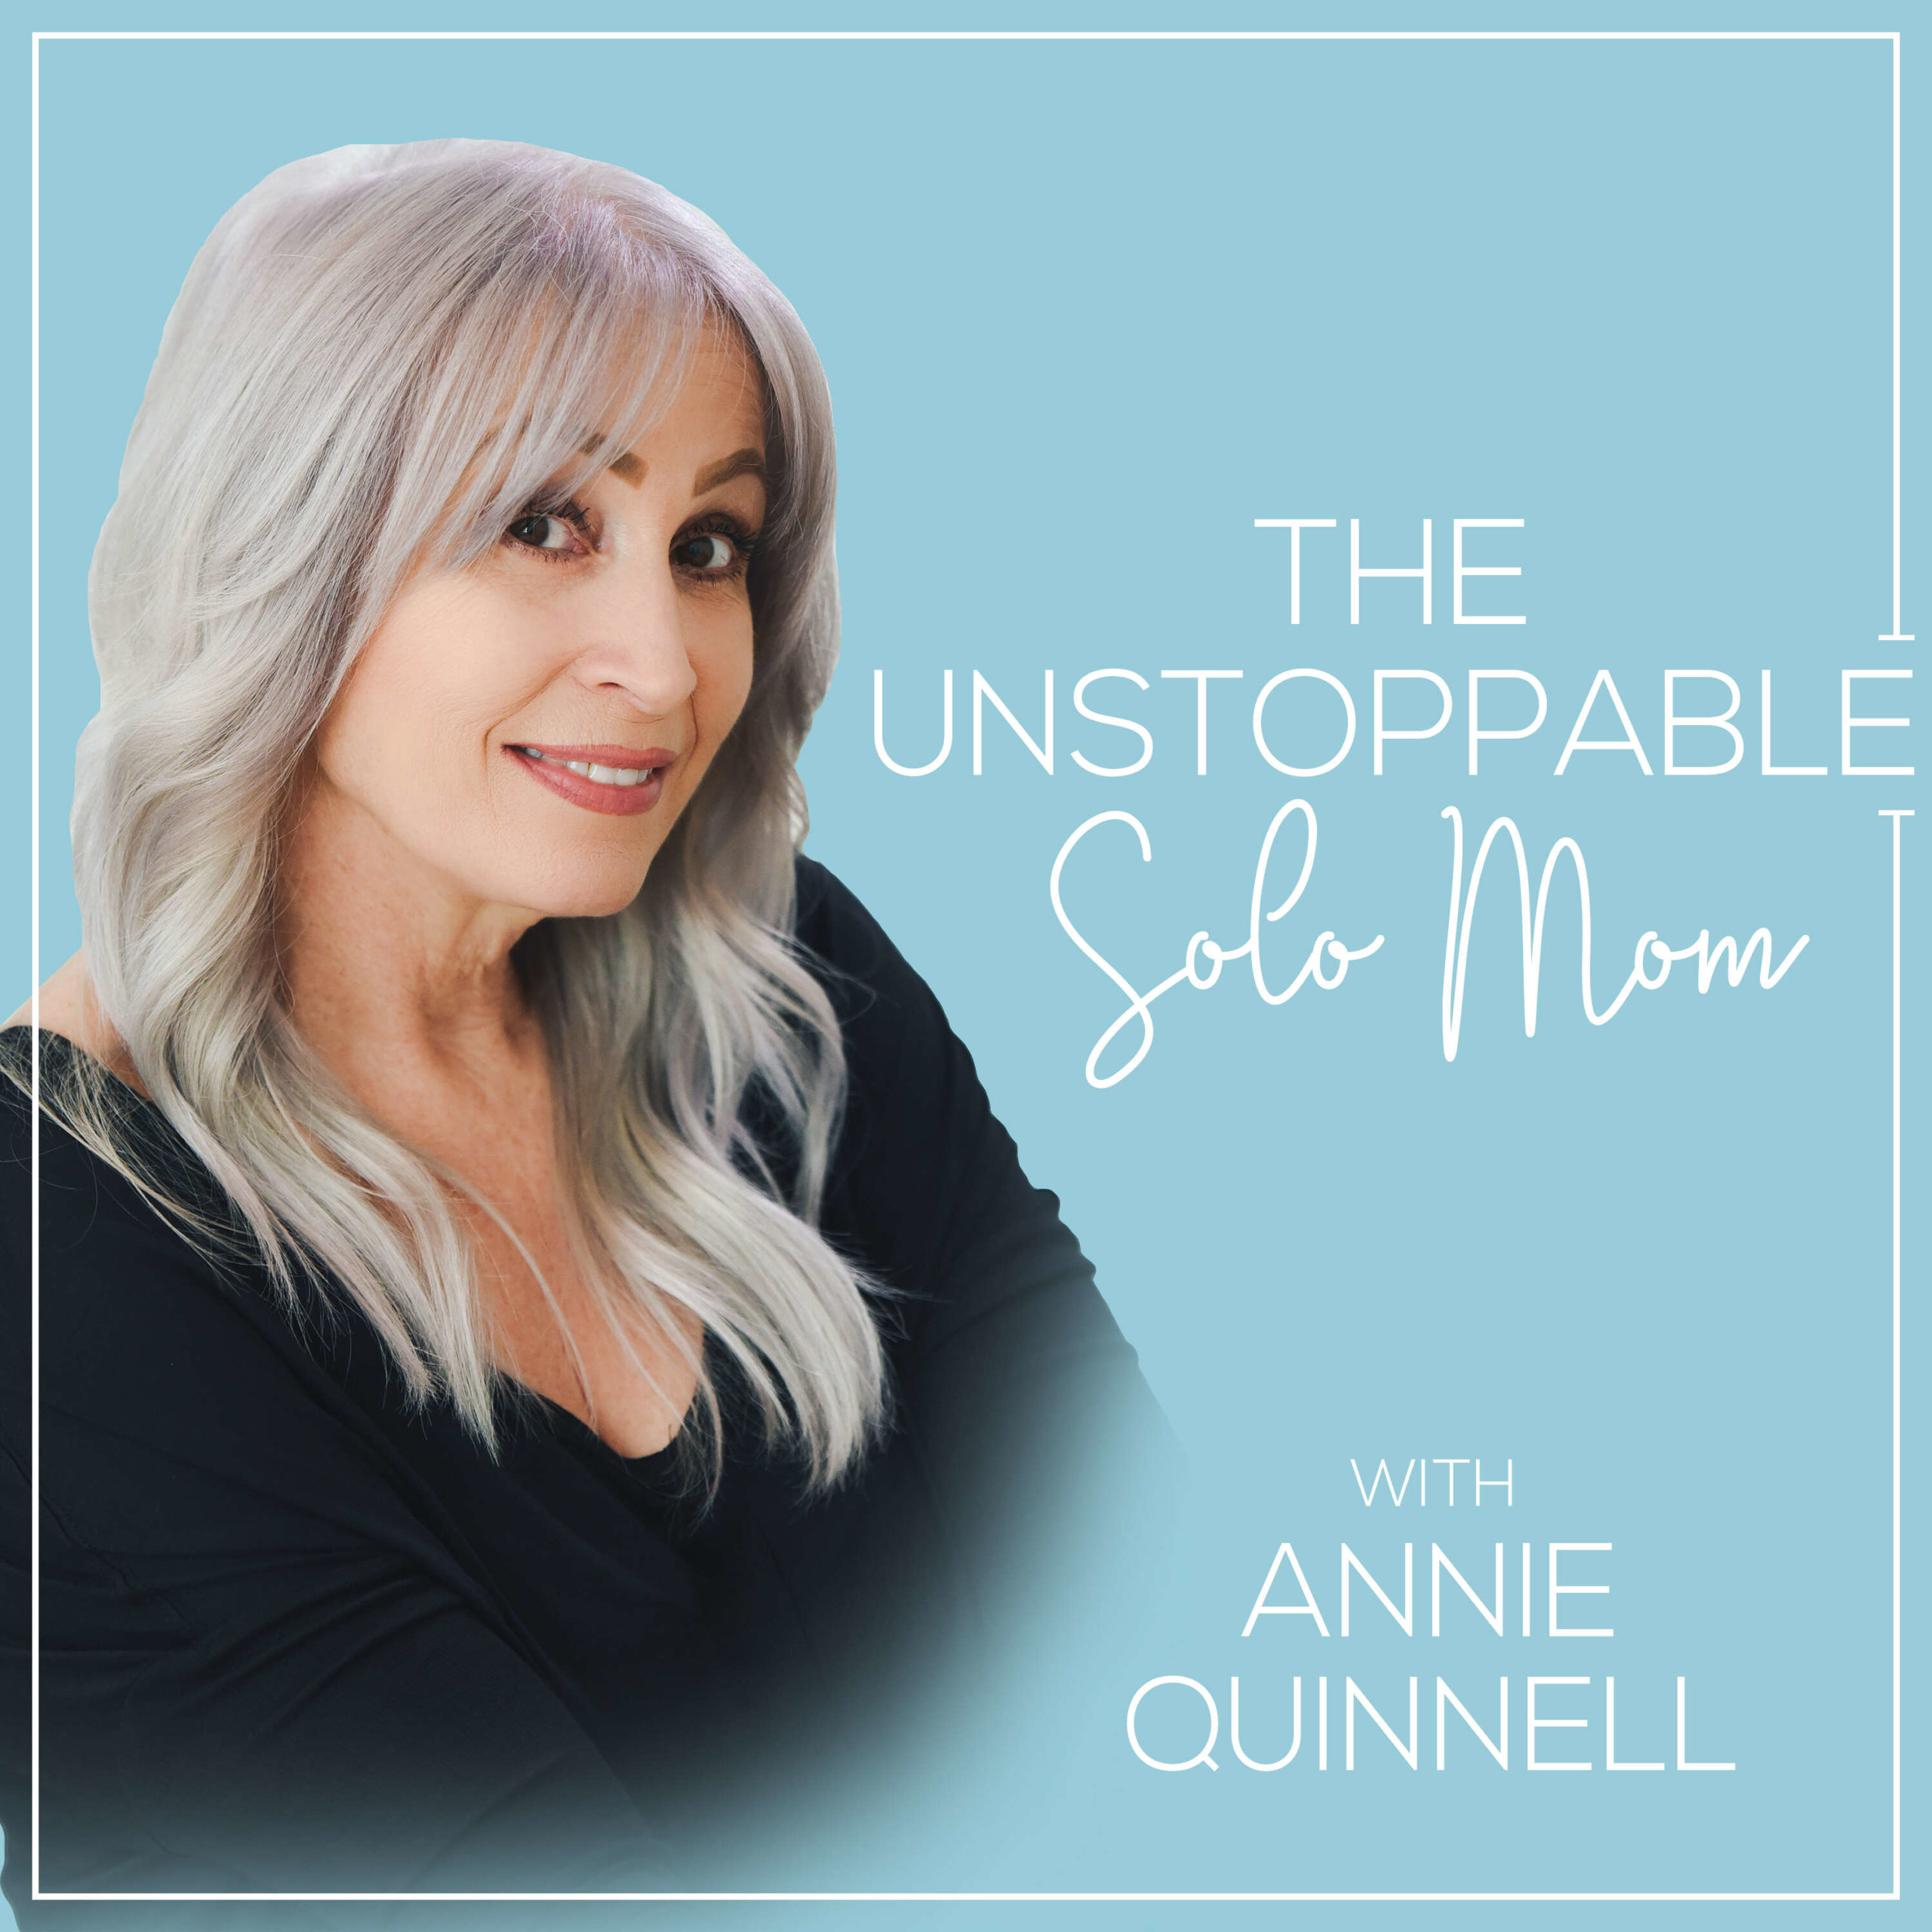 the-unstoppable-solo-mom-podcast-trailer_thumbnail.png